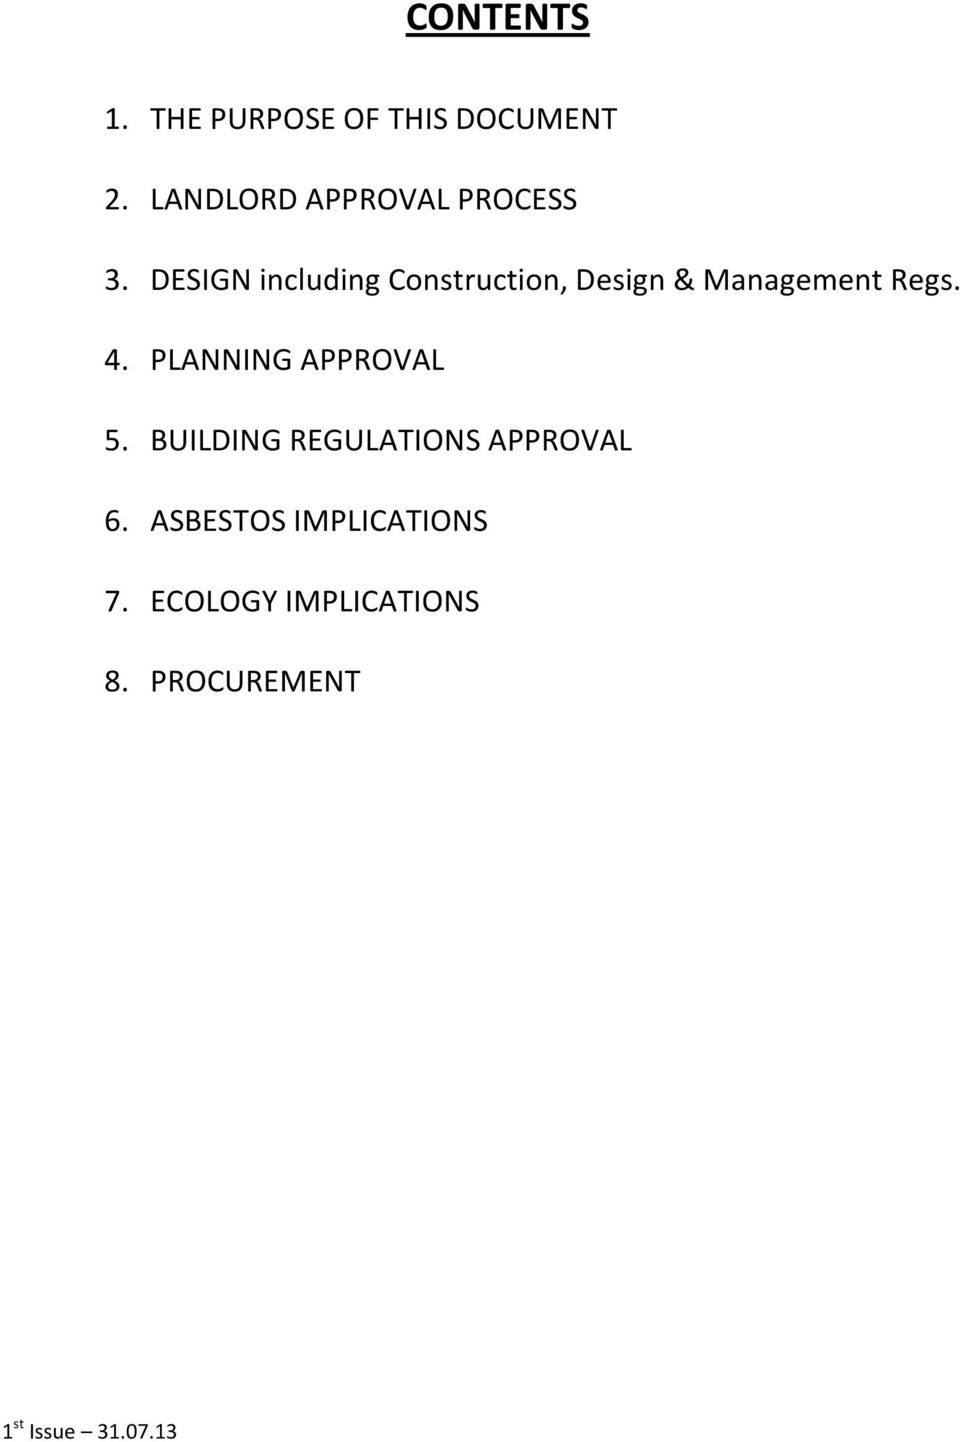 DESIGN including Construction, Design & Management Regs. 4.